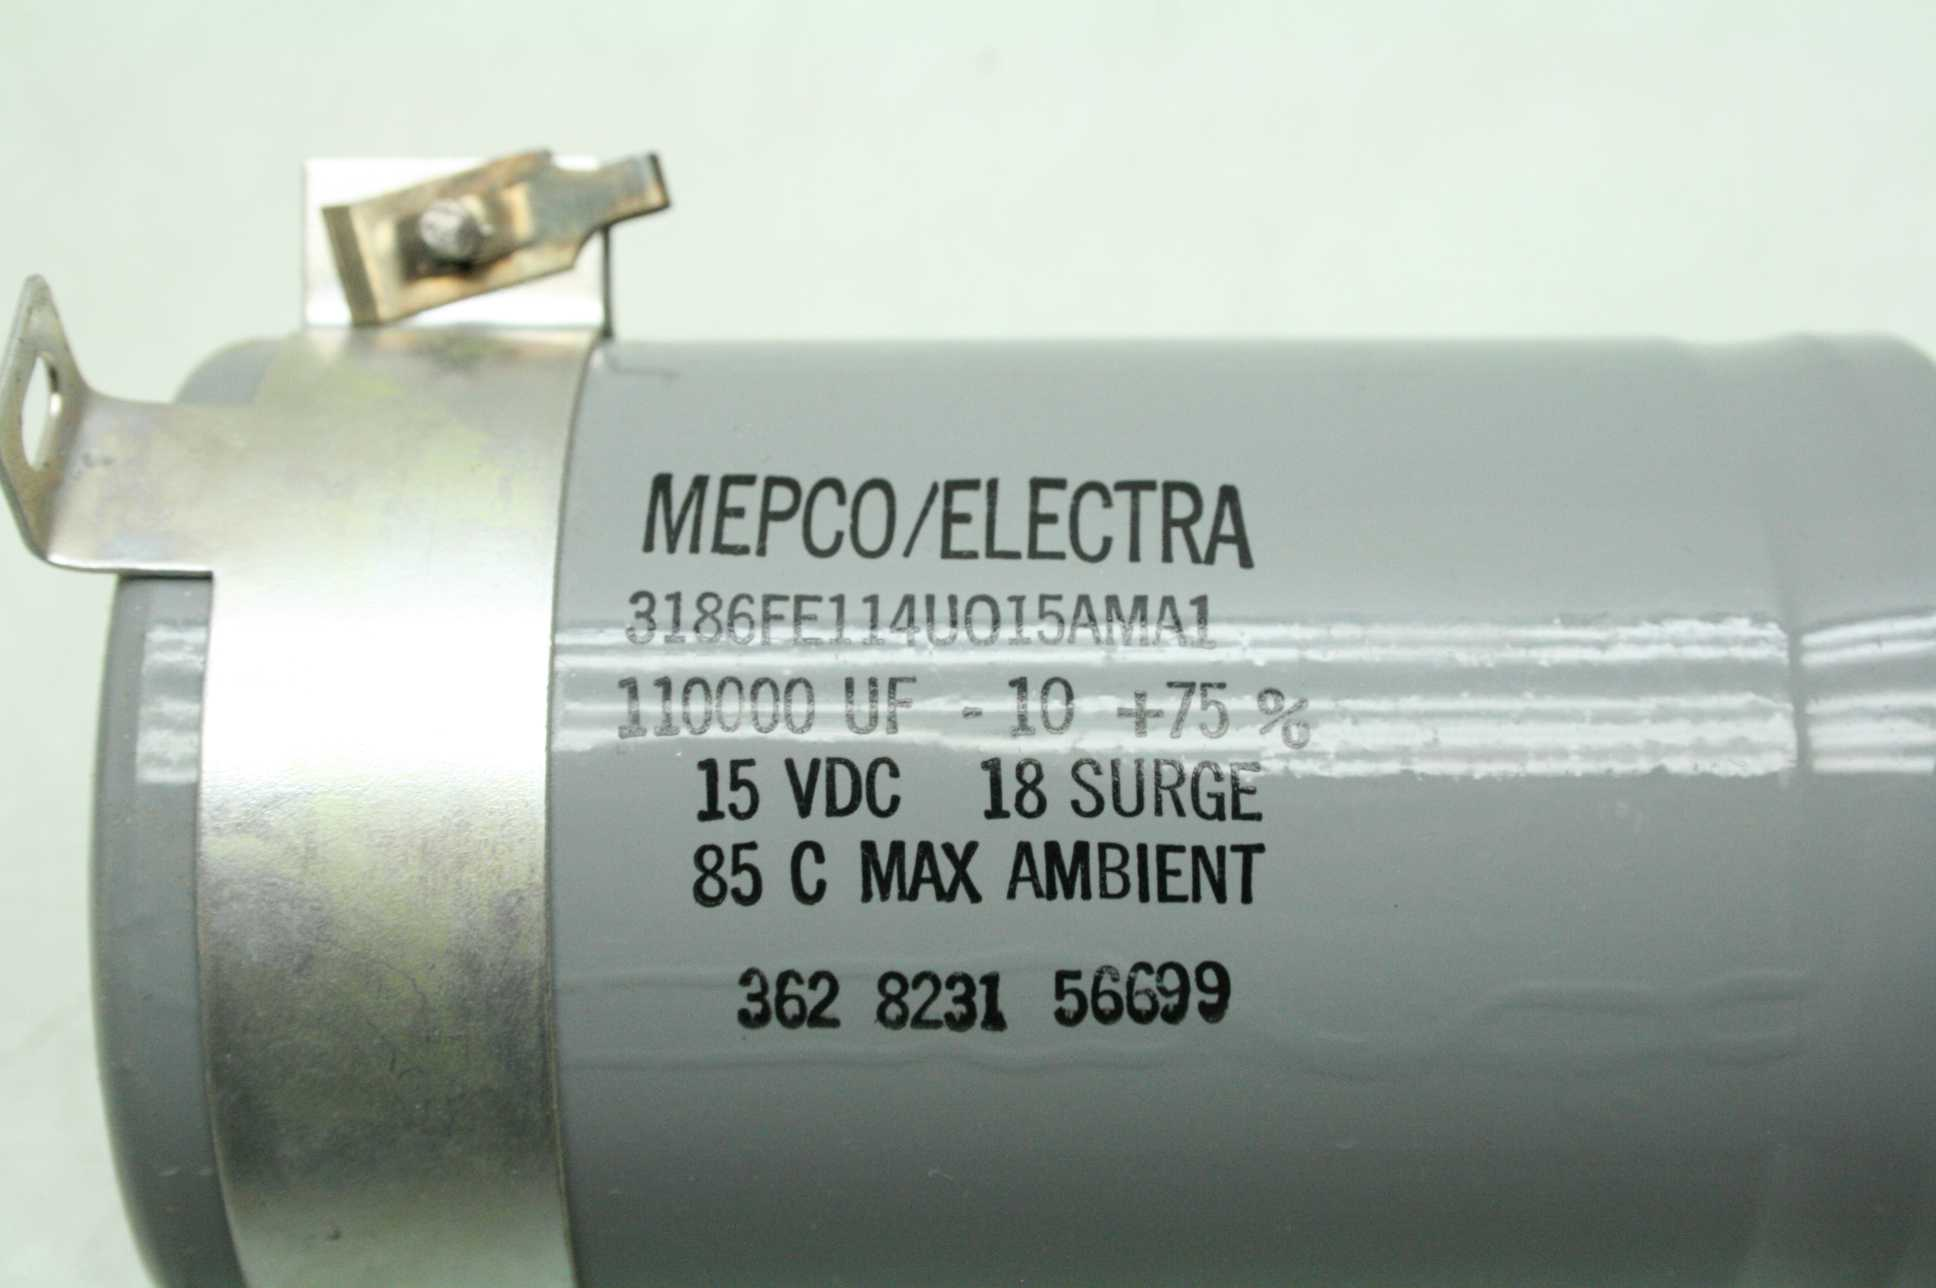 2 Mepco Electra 3186fe114u015ama1 Electrolytic Capacitors 11000 Uf 15vdc further Koa Inductors further Kapasitor Resistor Dioda together with 10000uF 300000uF in addition 10000uF 300000uF. on electrolytic capacitors surplus